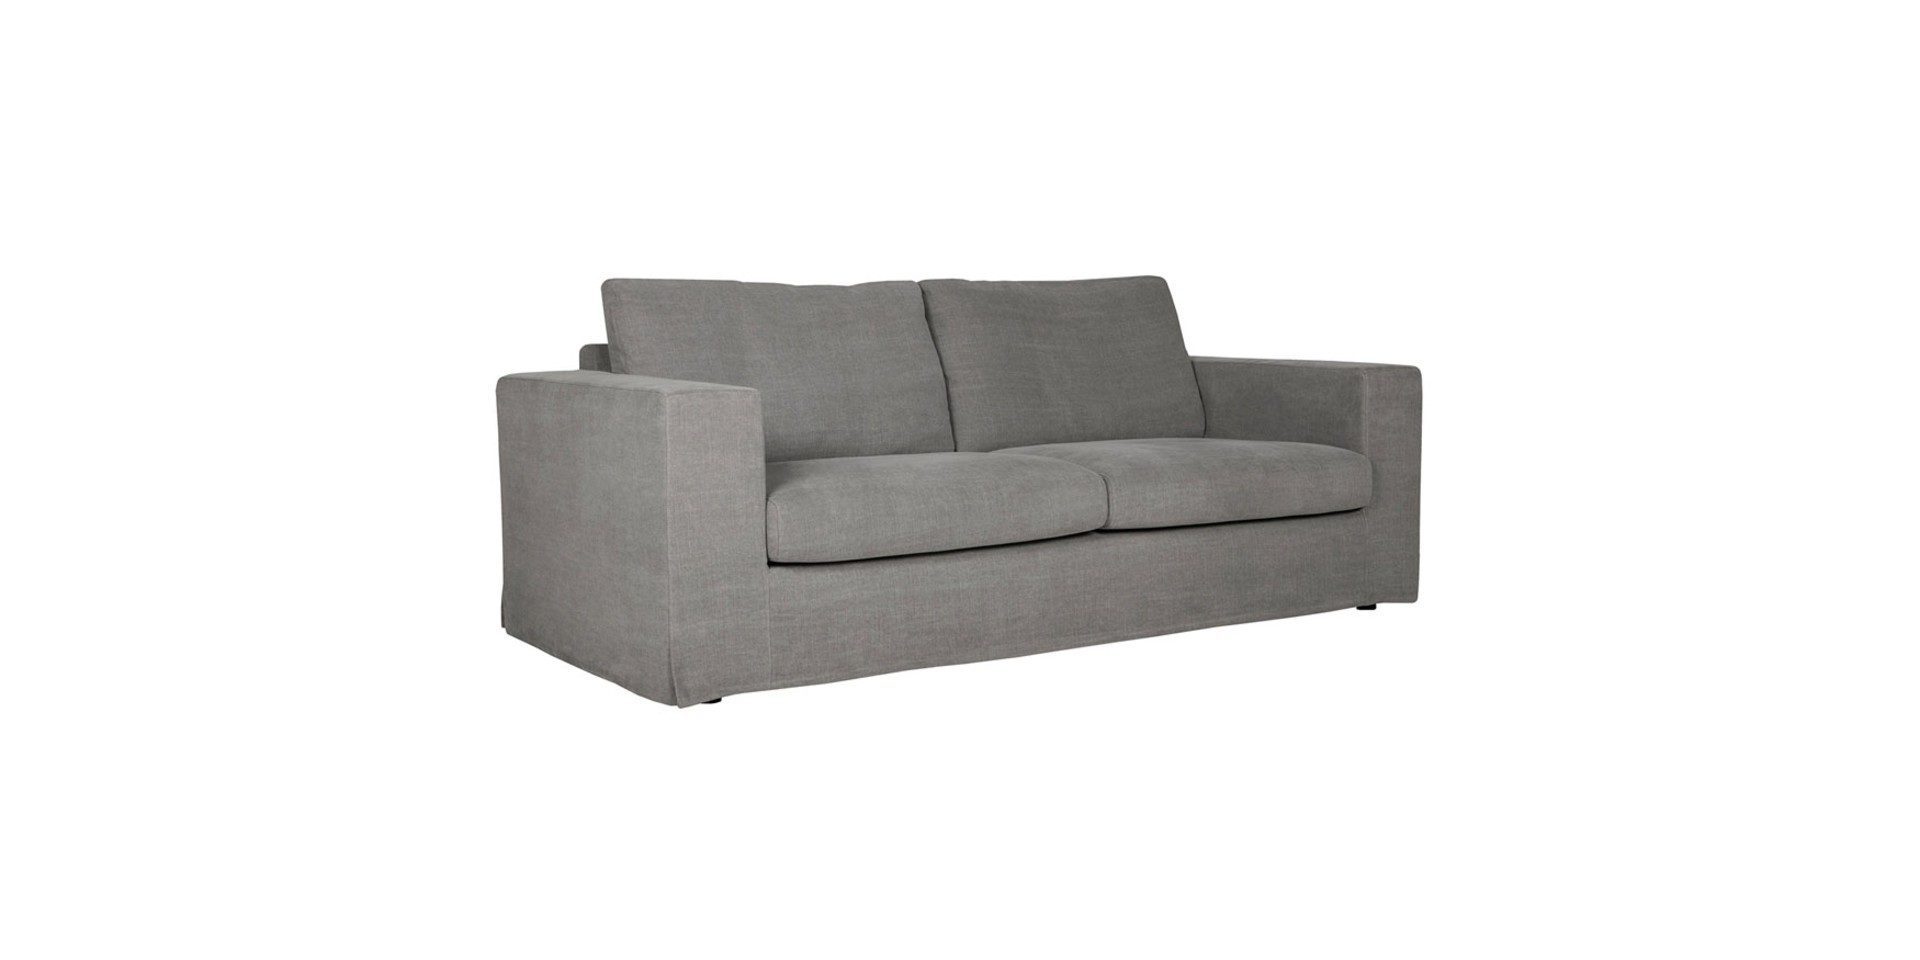 sits-elsie-canape-3seater_kiss3_stone_2